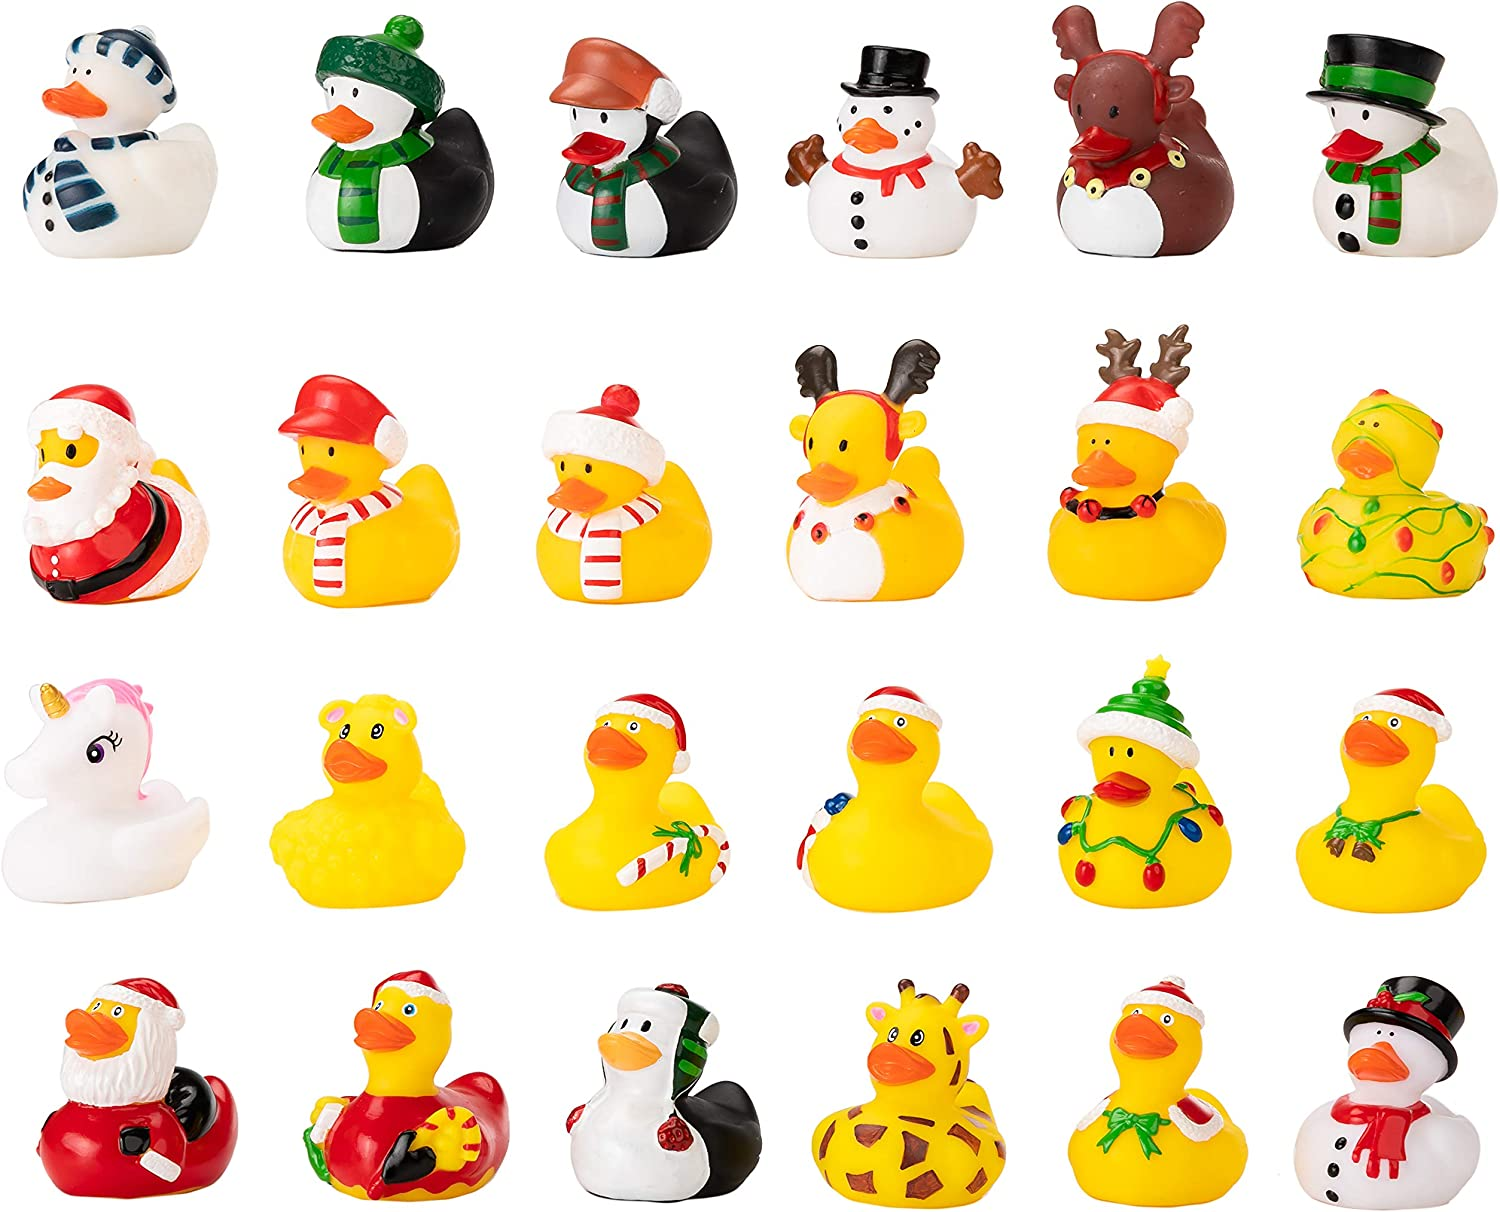 Kids and Toddlers Girls JOYIN 24 Pcs Christmas Rubber Ducks for Boys Christmas Party Favor Gifts